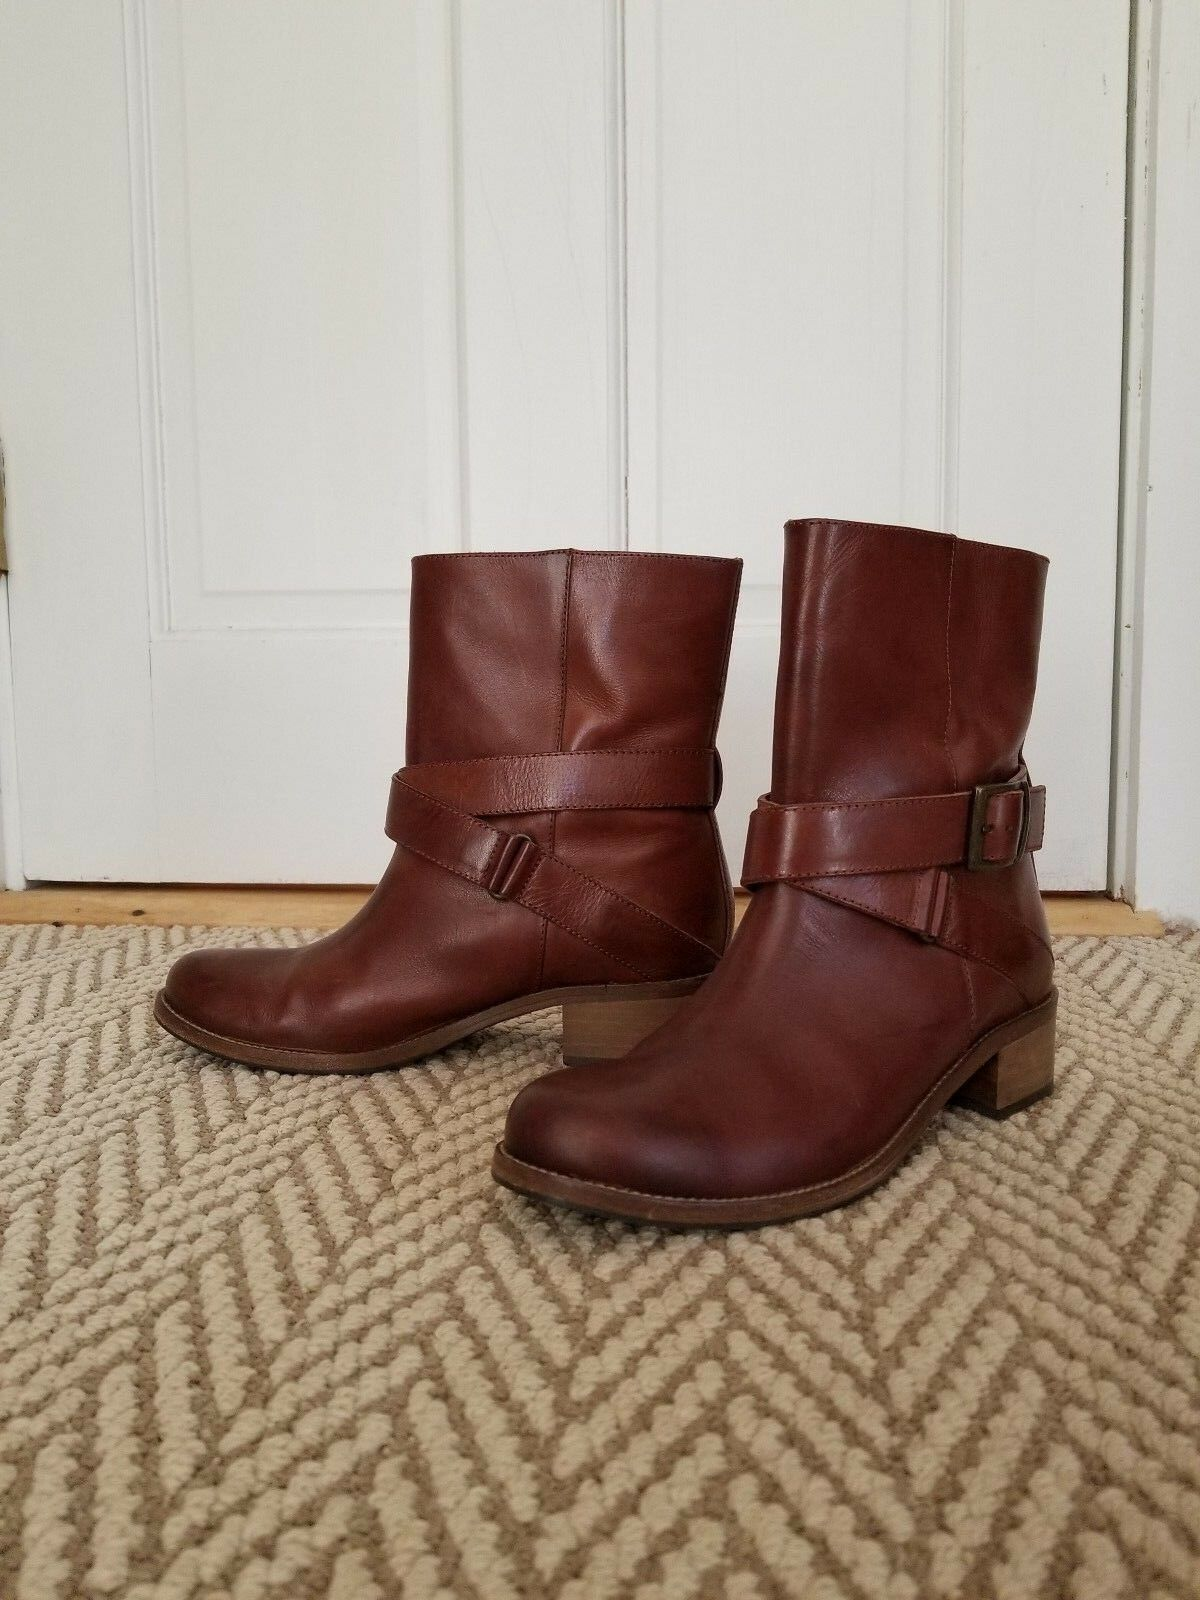 Saks Fifth Avenue Mid Calf Buckle Boot Bootie Size 38 Cognac  550 retail